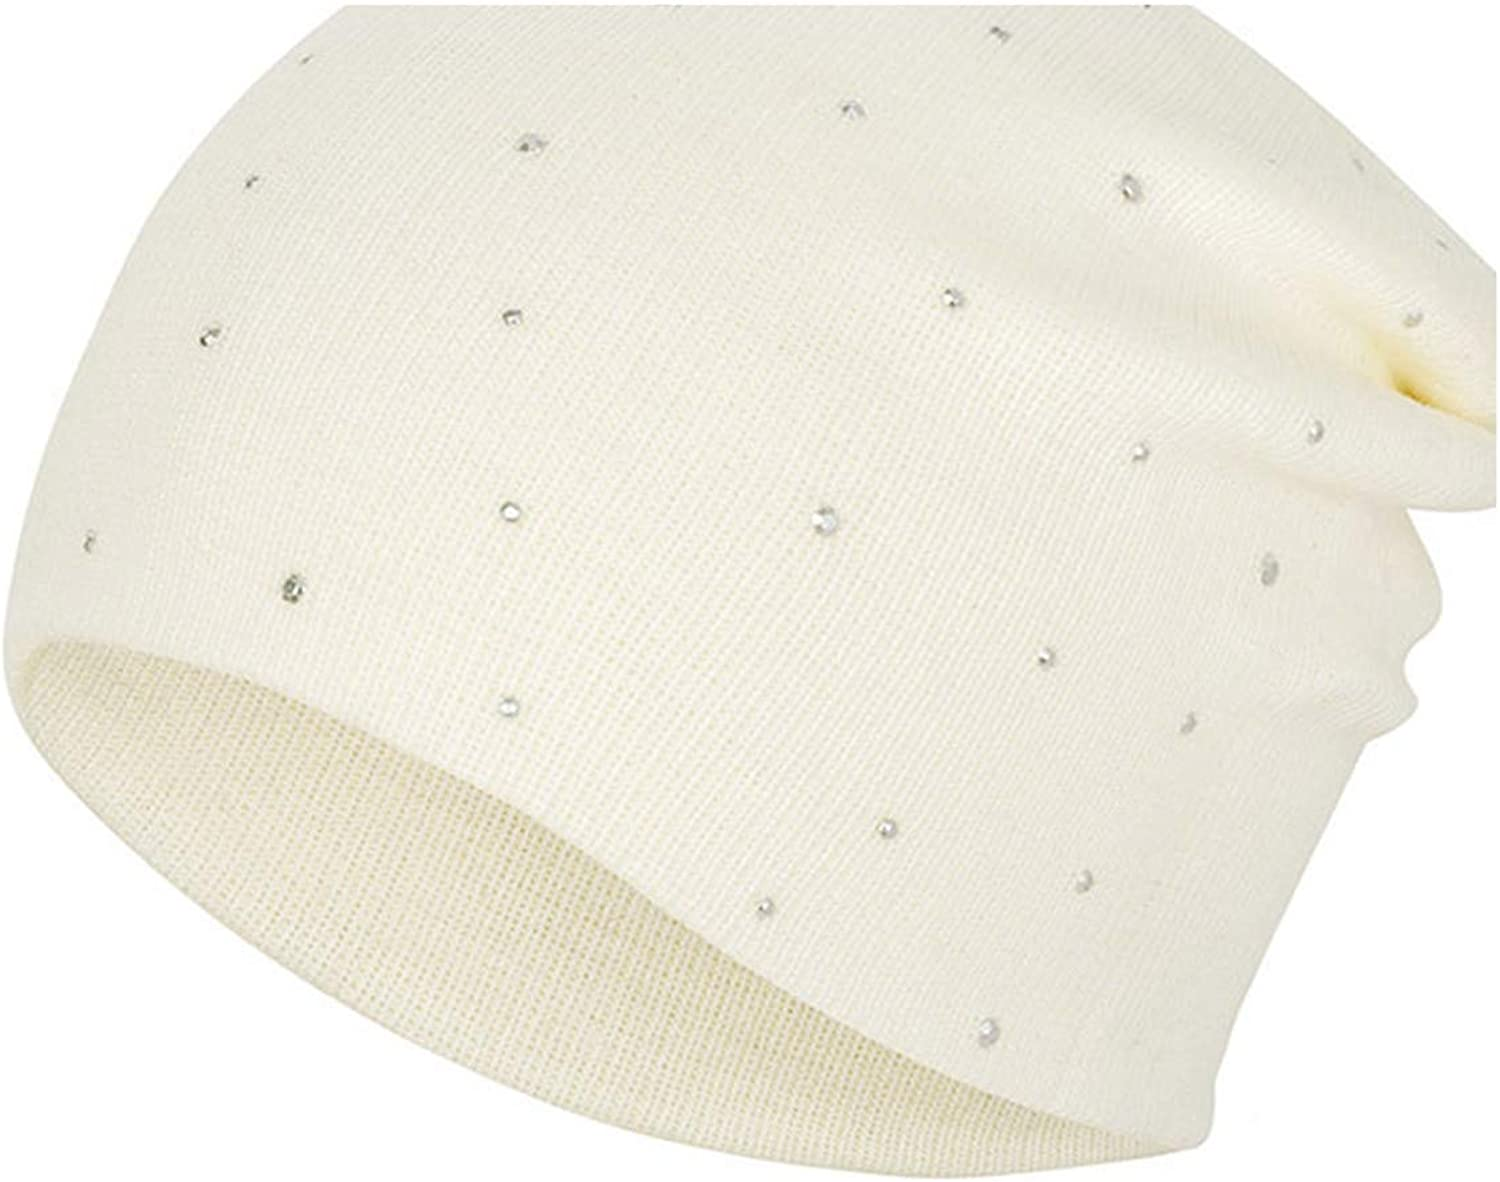 Krystal/_beautiful Pearl Autumn Winter Hat Women Skullies Beanies Solid Color Knitted Cotton Caps